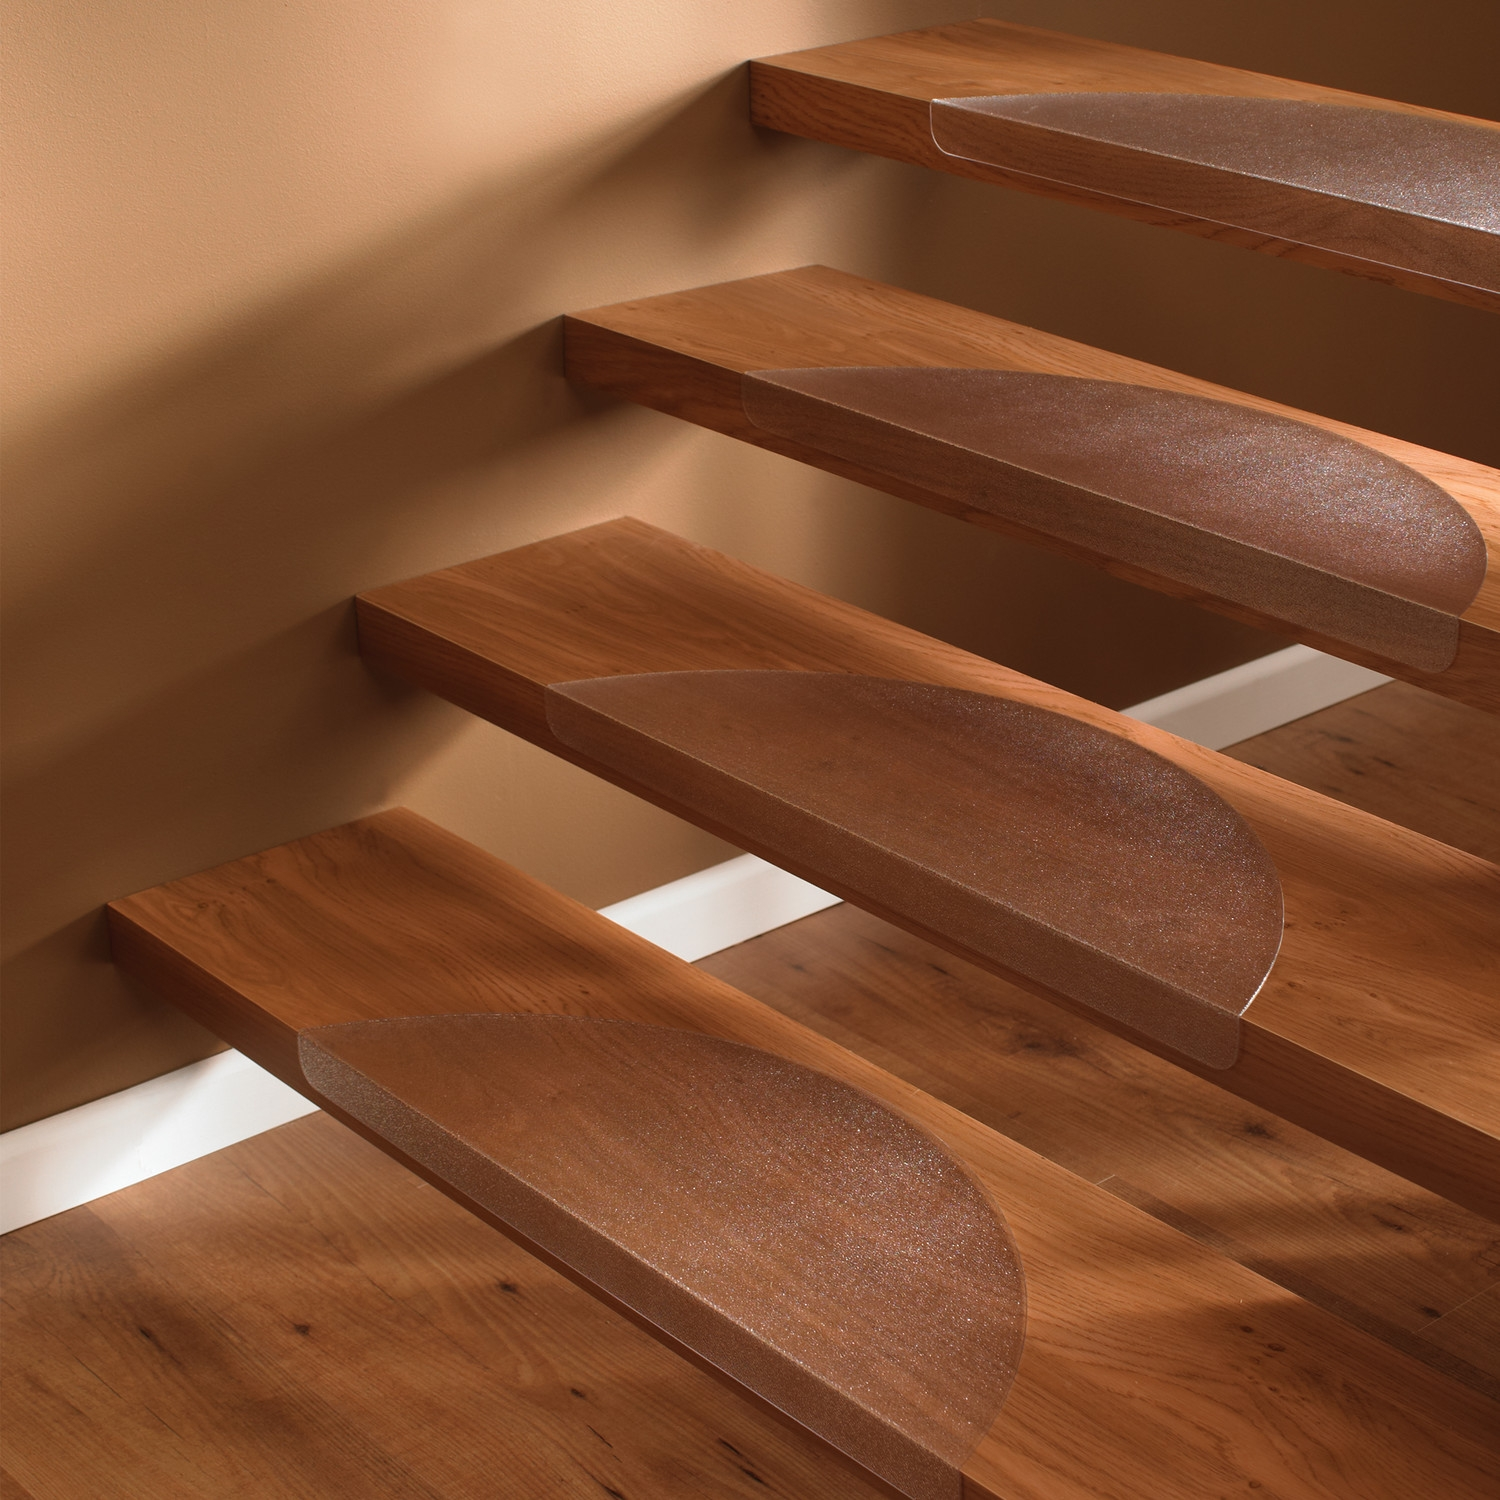 Carpet On Stairs Safety Carpet Stair Treads Non Slip Set Of 7 Within Non Slip Carpet Stair Treads Indoor (Image 2 of 15)